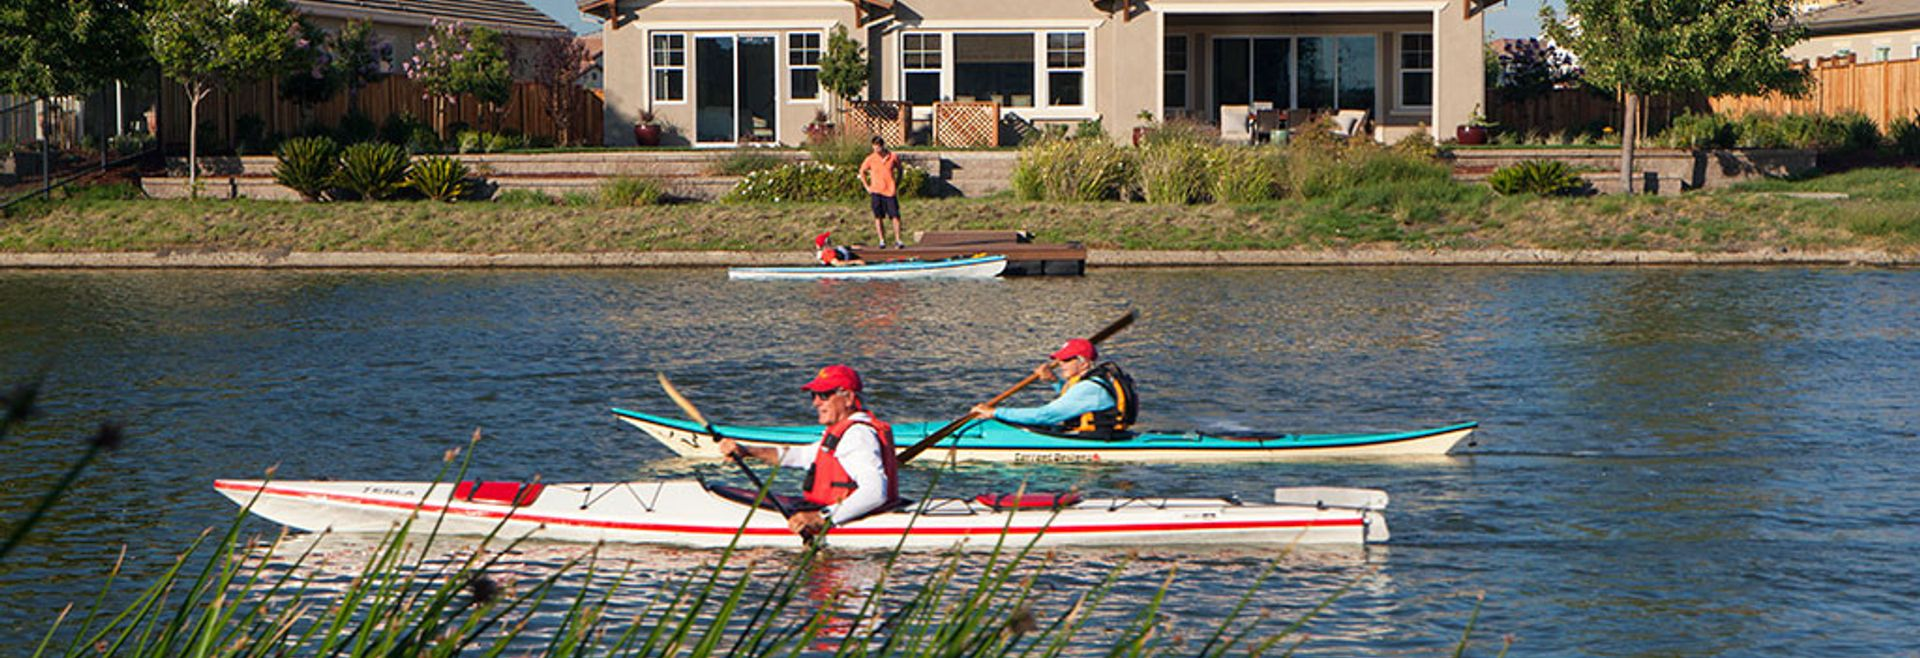 Shoreline Summer Lake Kayakers Plan 4